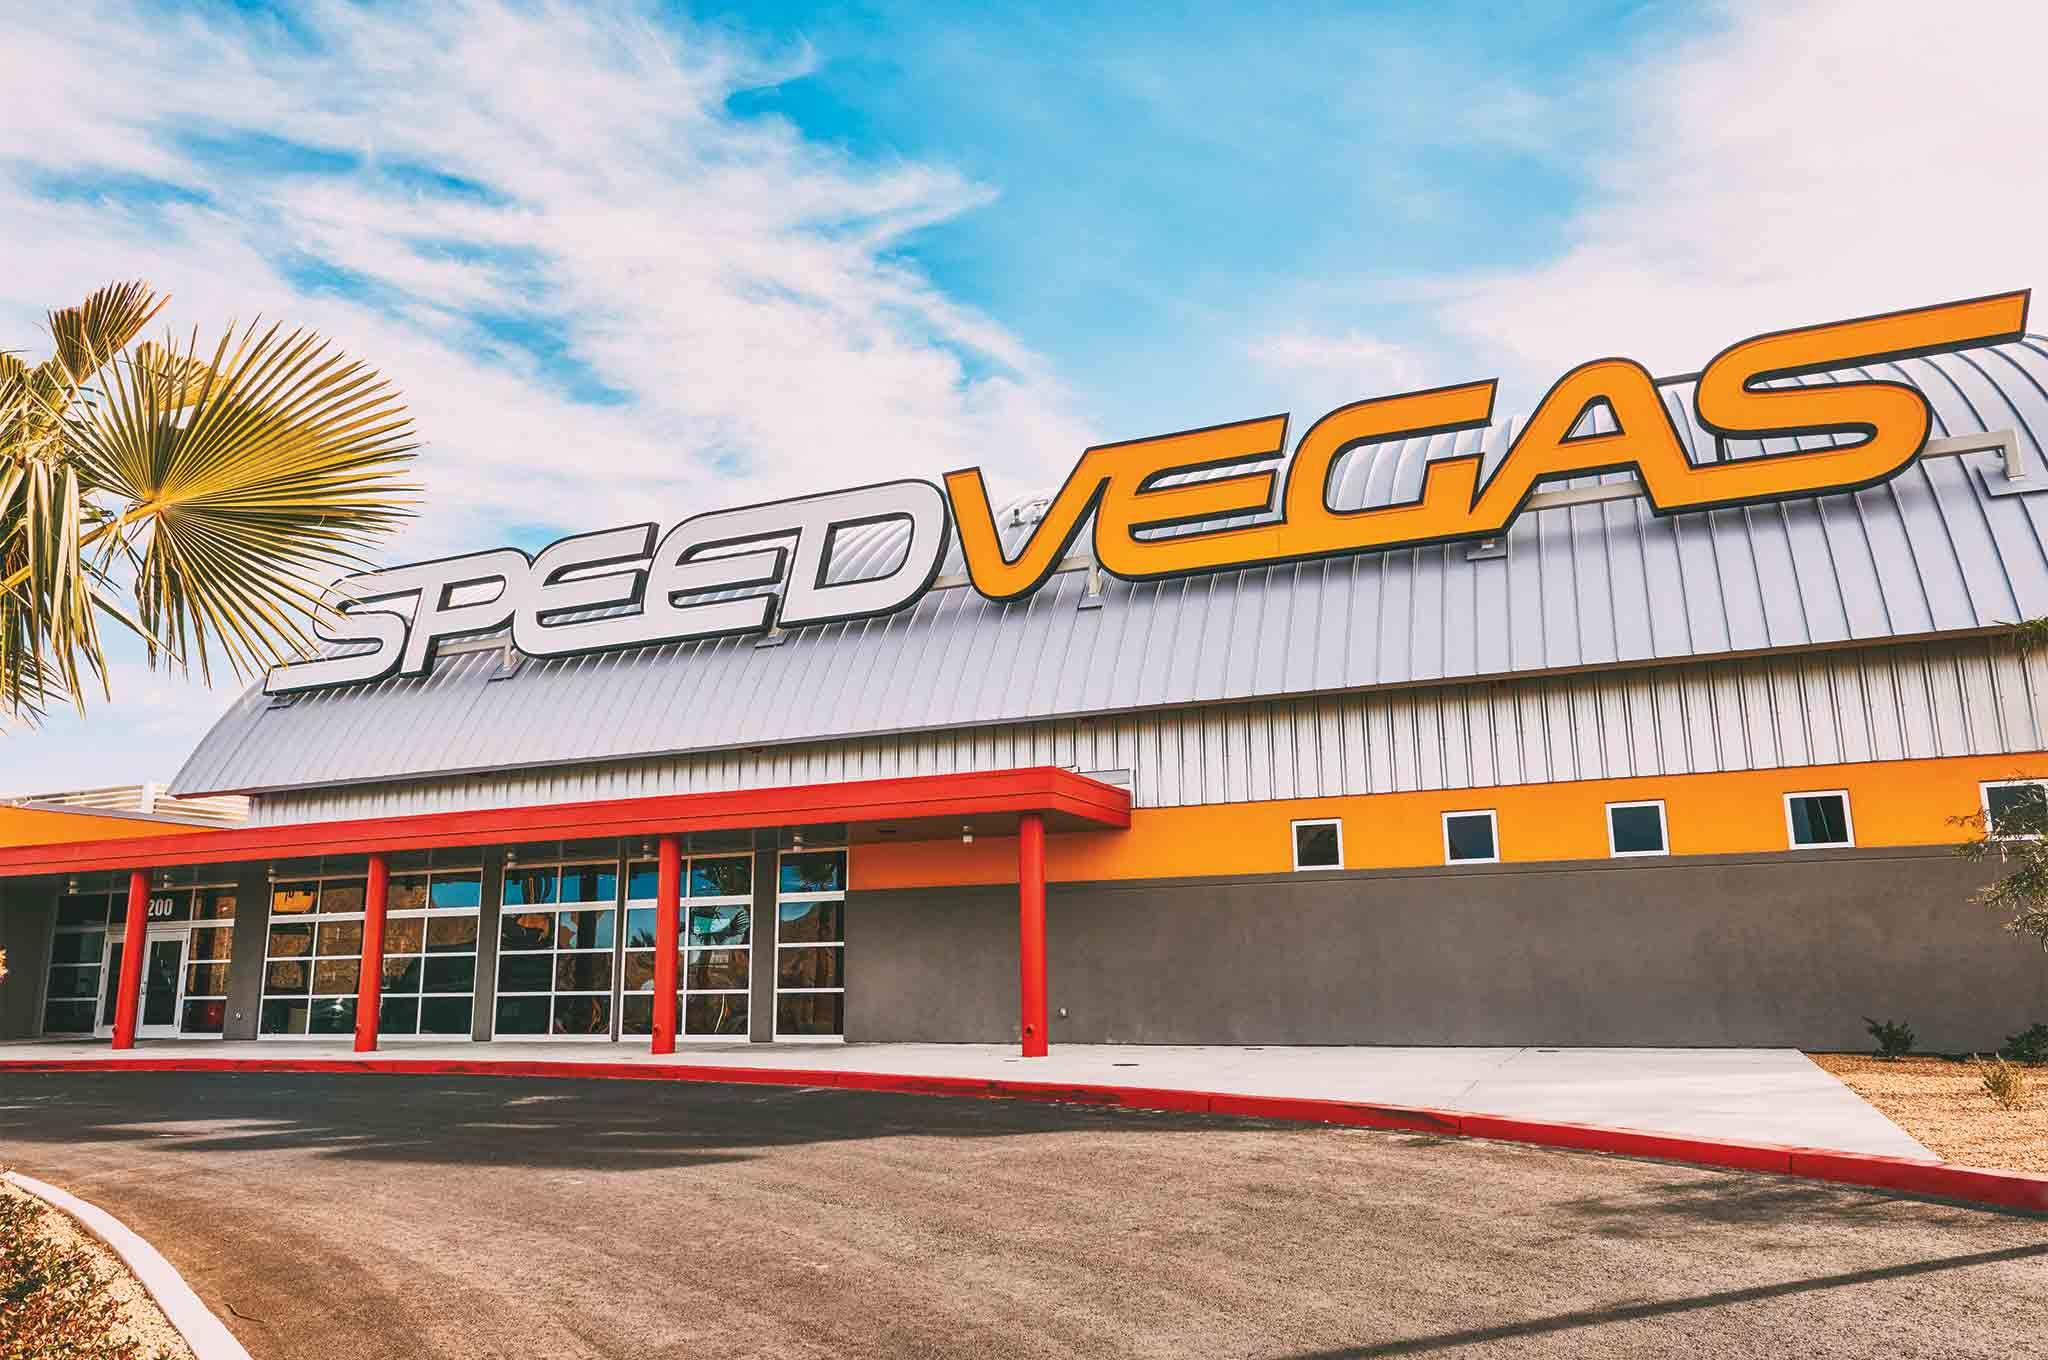 Speed Vegas 01